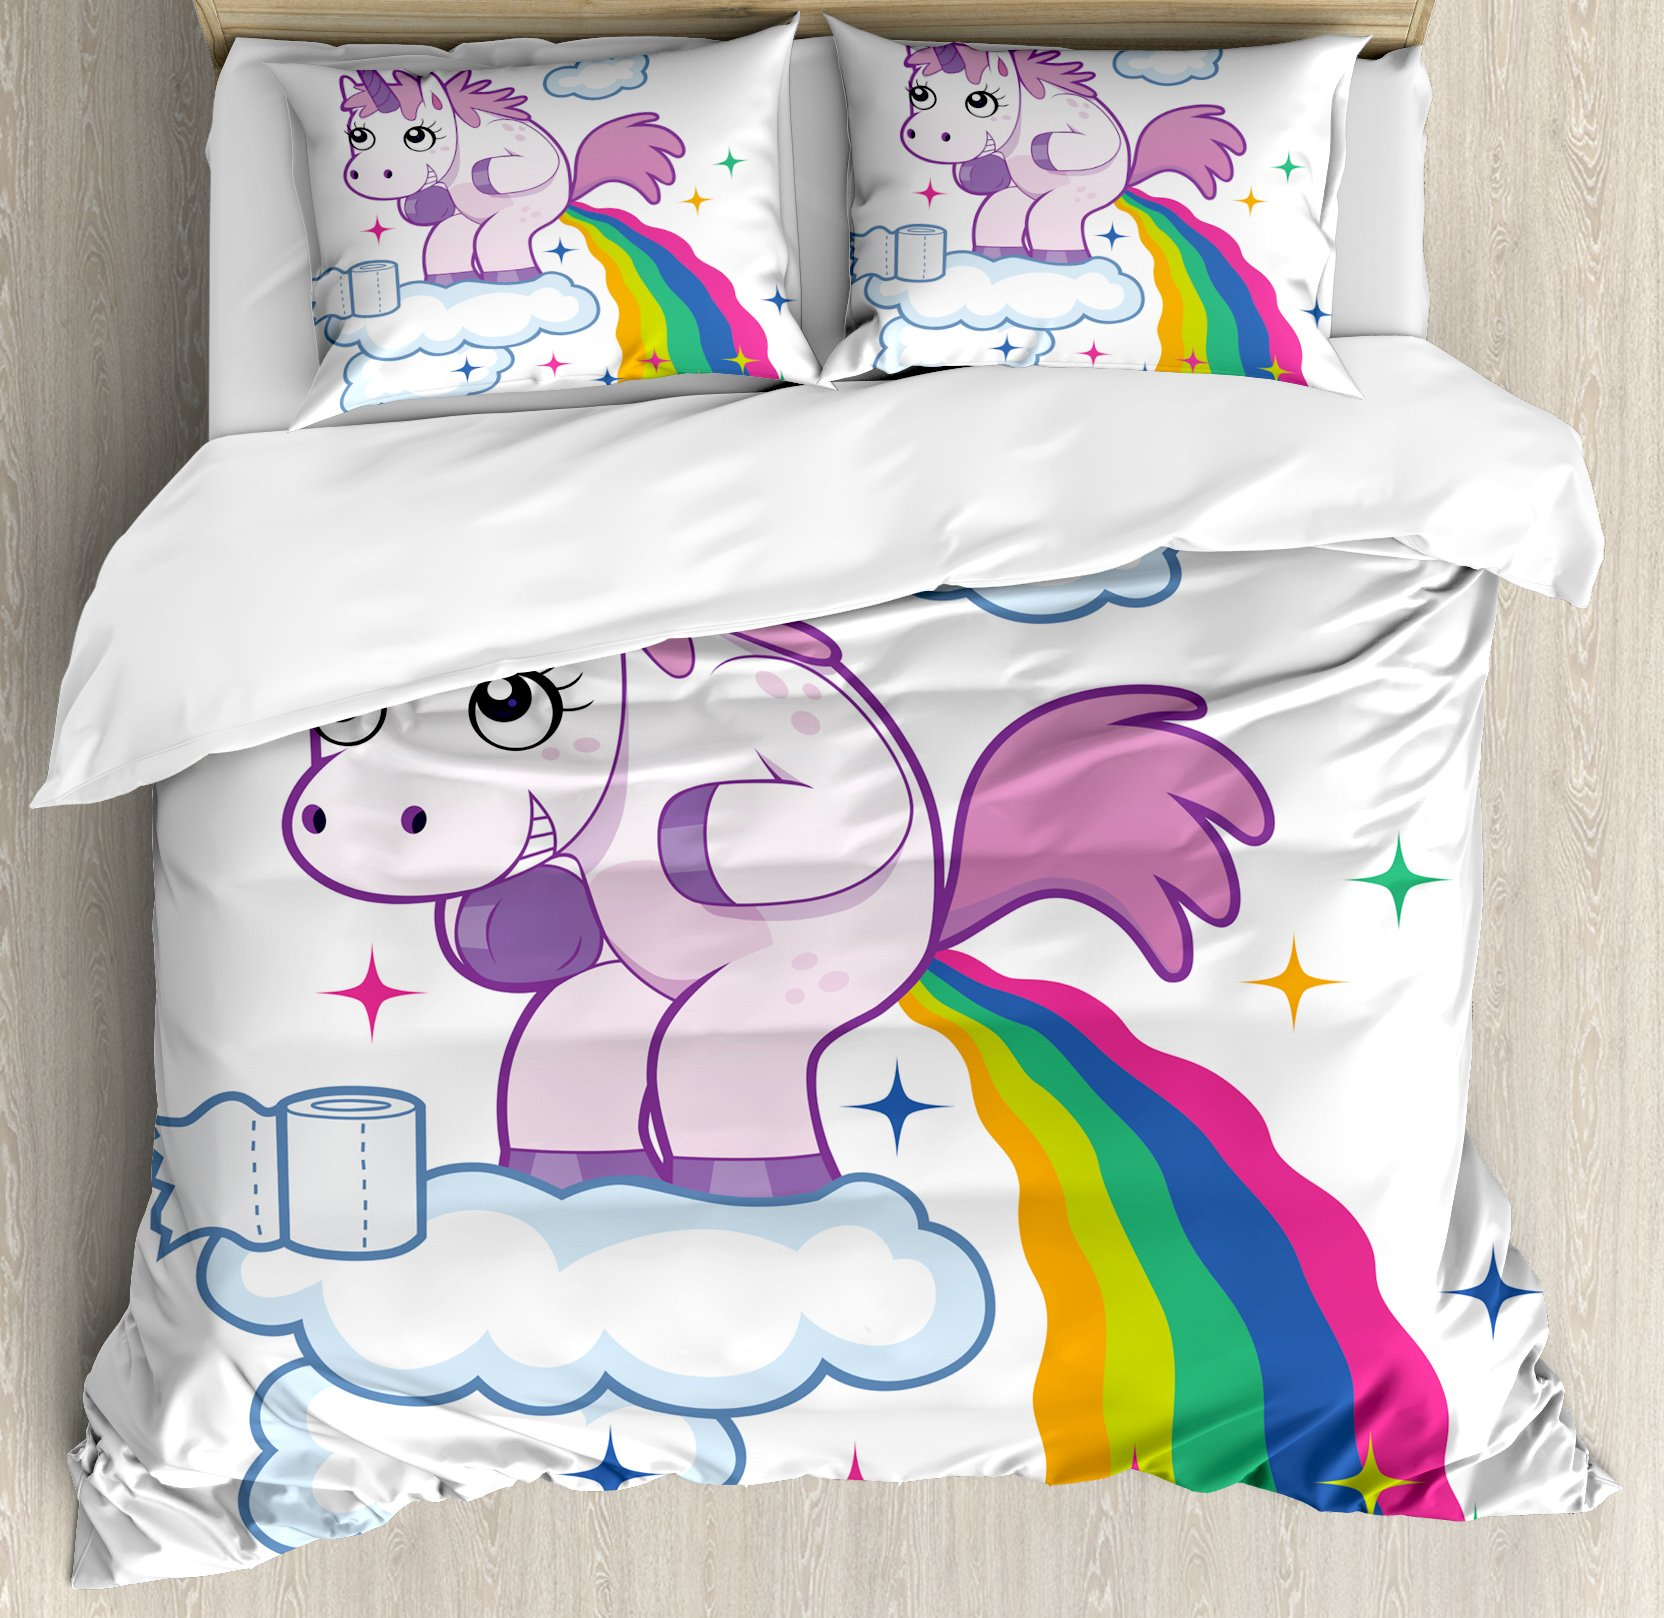 Funny Queen Size Duvet Cover Set by Ambesonne, Unicorn Pooping Rainbow over Clouds Creative Kids Girls Fairy Tale Fantasy Cartoon, Decorative 3 Piece Bedding Set with 2 Pillow Shams, Multicolor